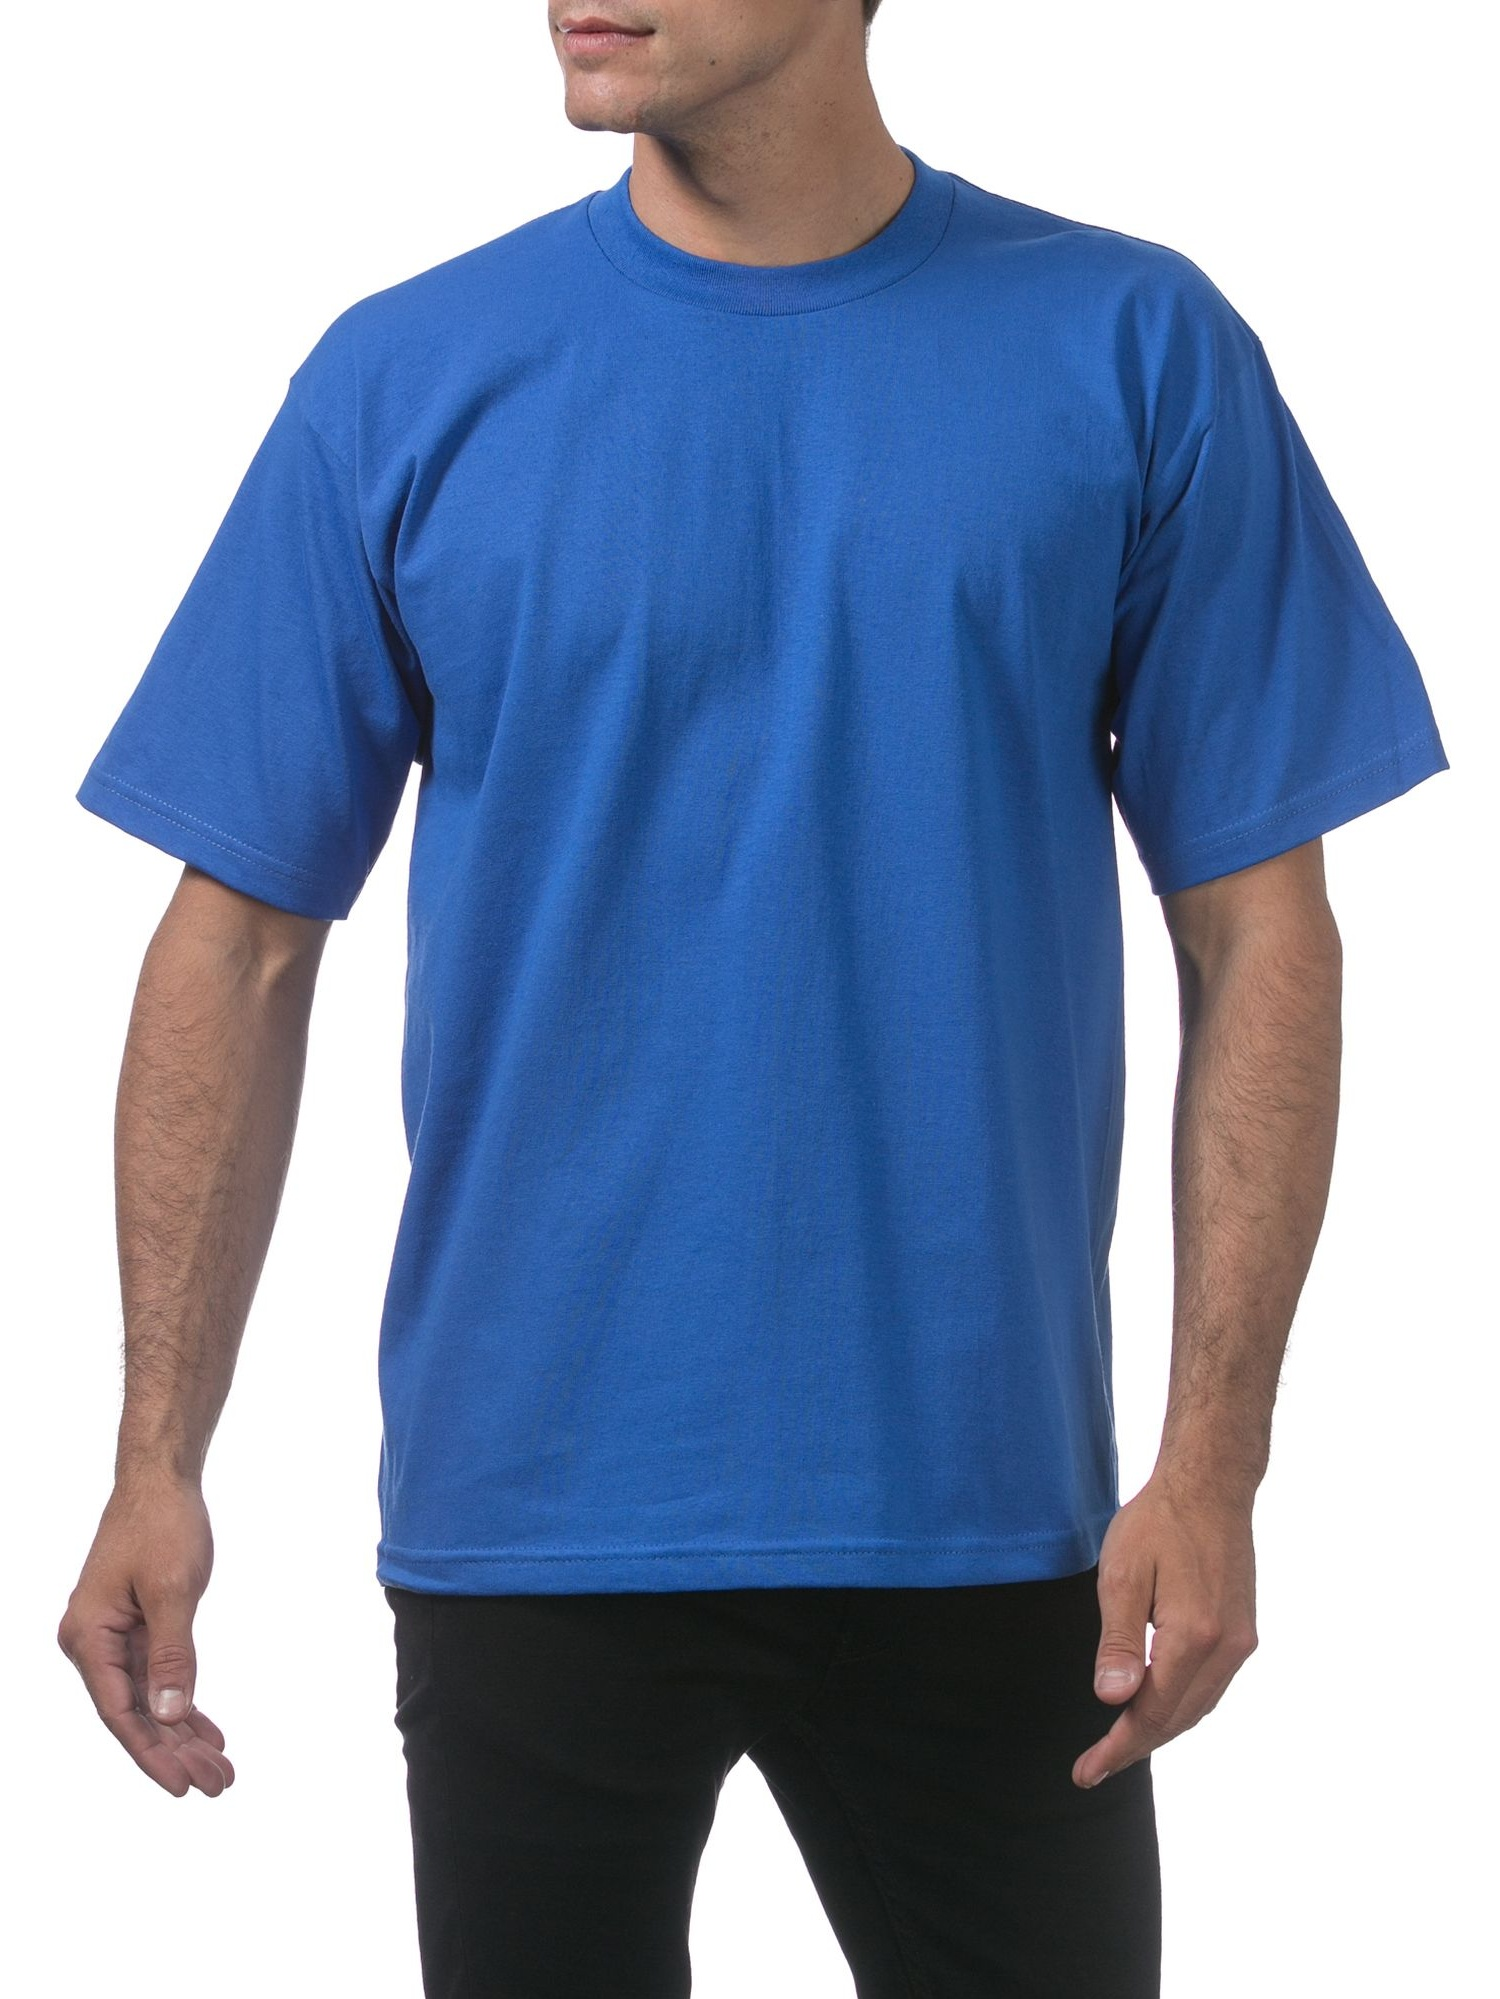 Pro Club Mens 3-Pack Heavyweight Cotton Short Sleeve Crew Neck T-Shirt